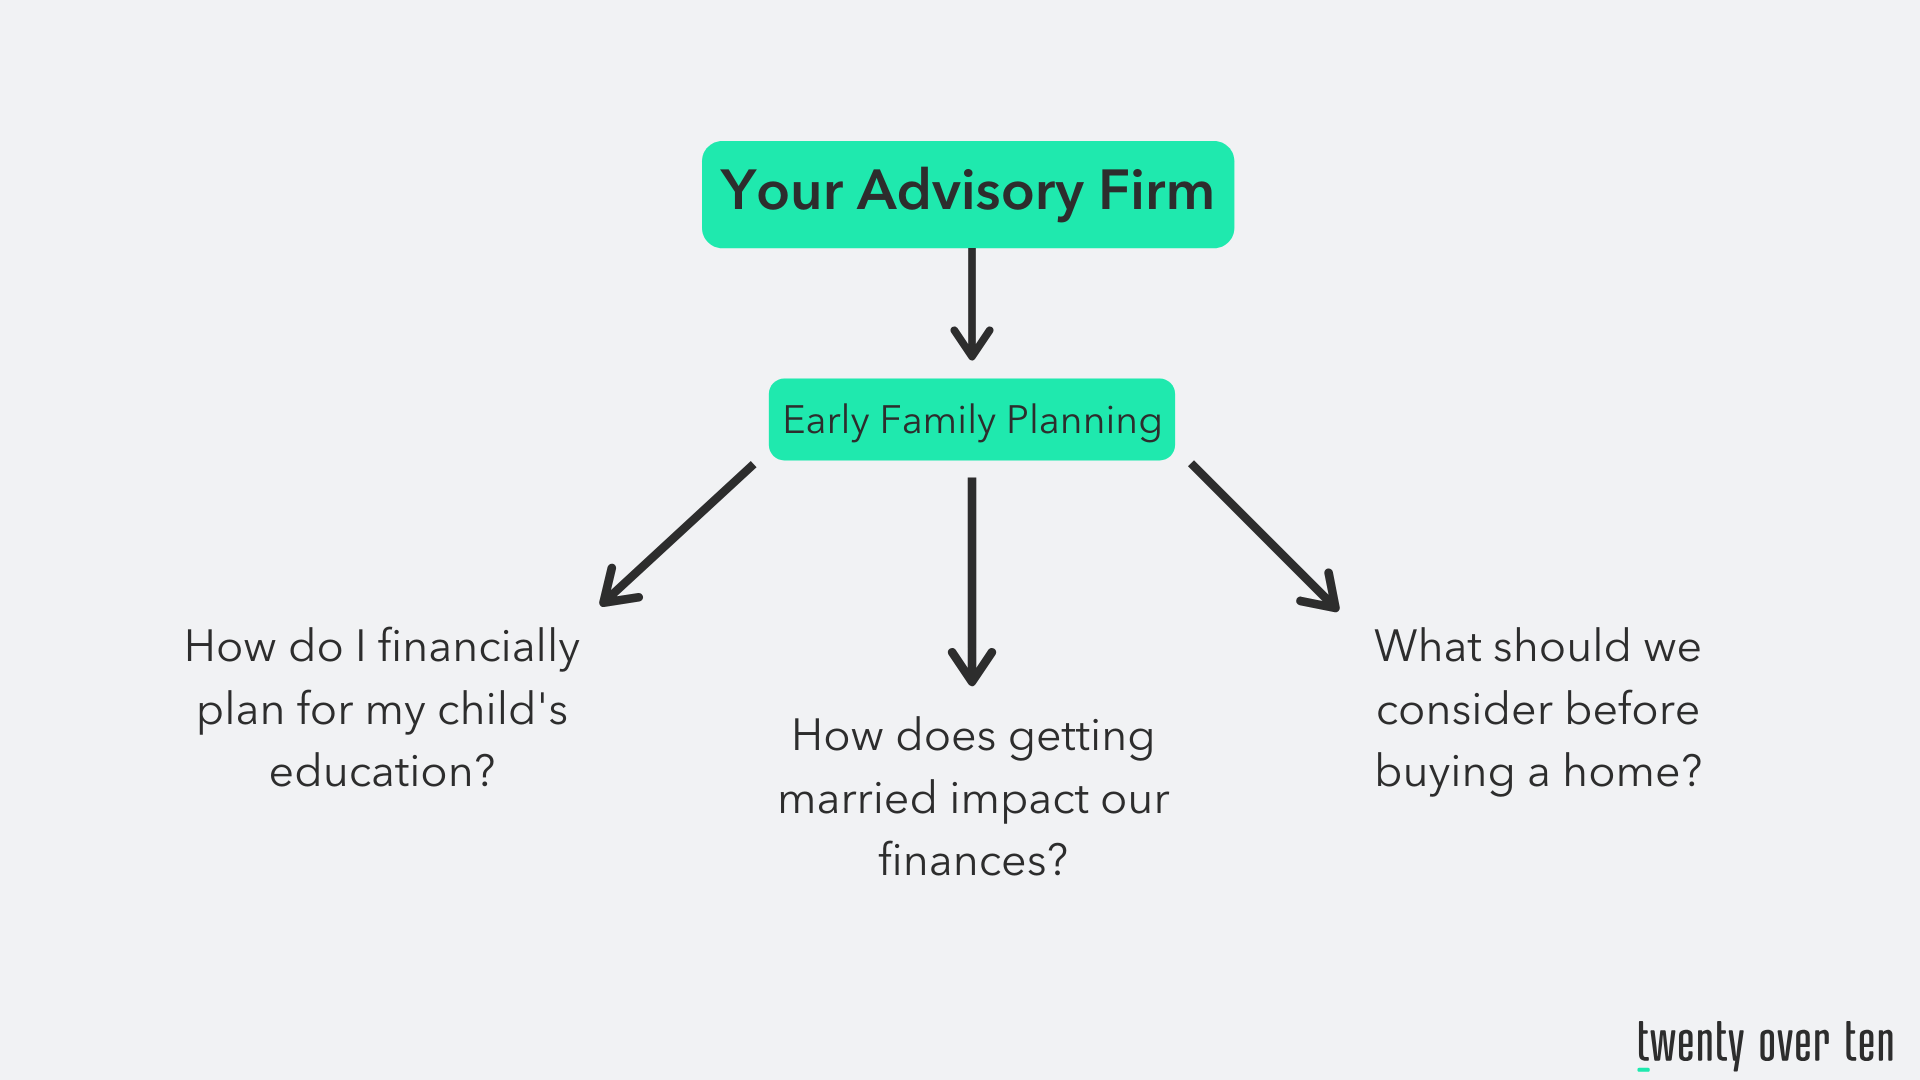 Financial advisory firm video content ideas concept map